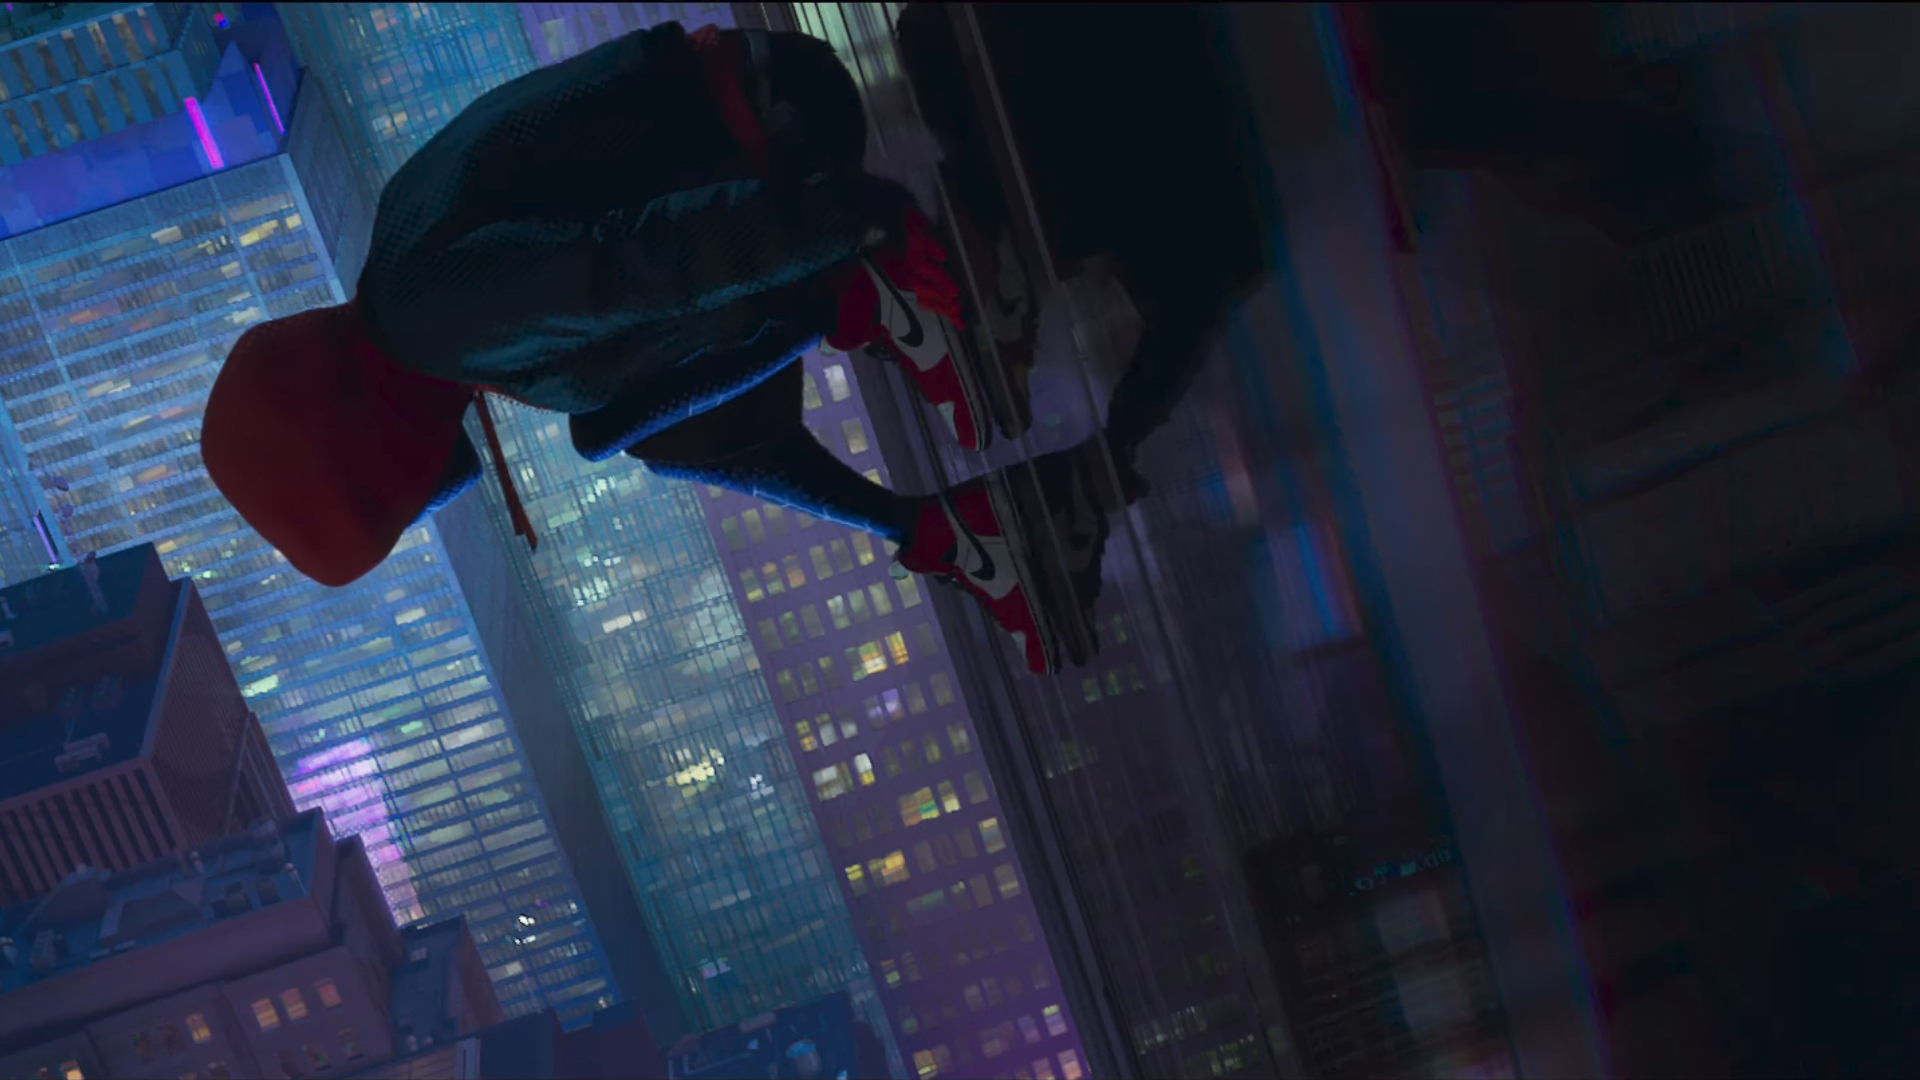 Into The Spider Verse X Wallpaper Iwallpaper: 1920x1080 SpiderMan Into The Spider Verse Movie Laptop